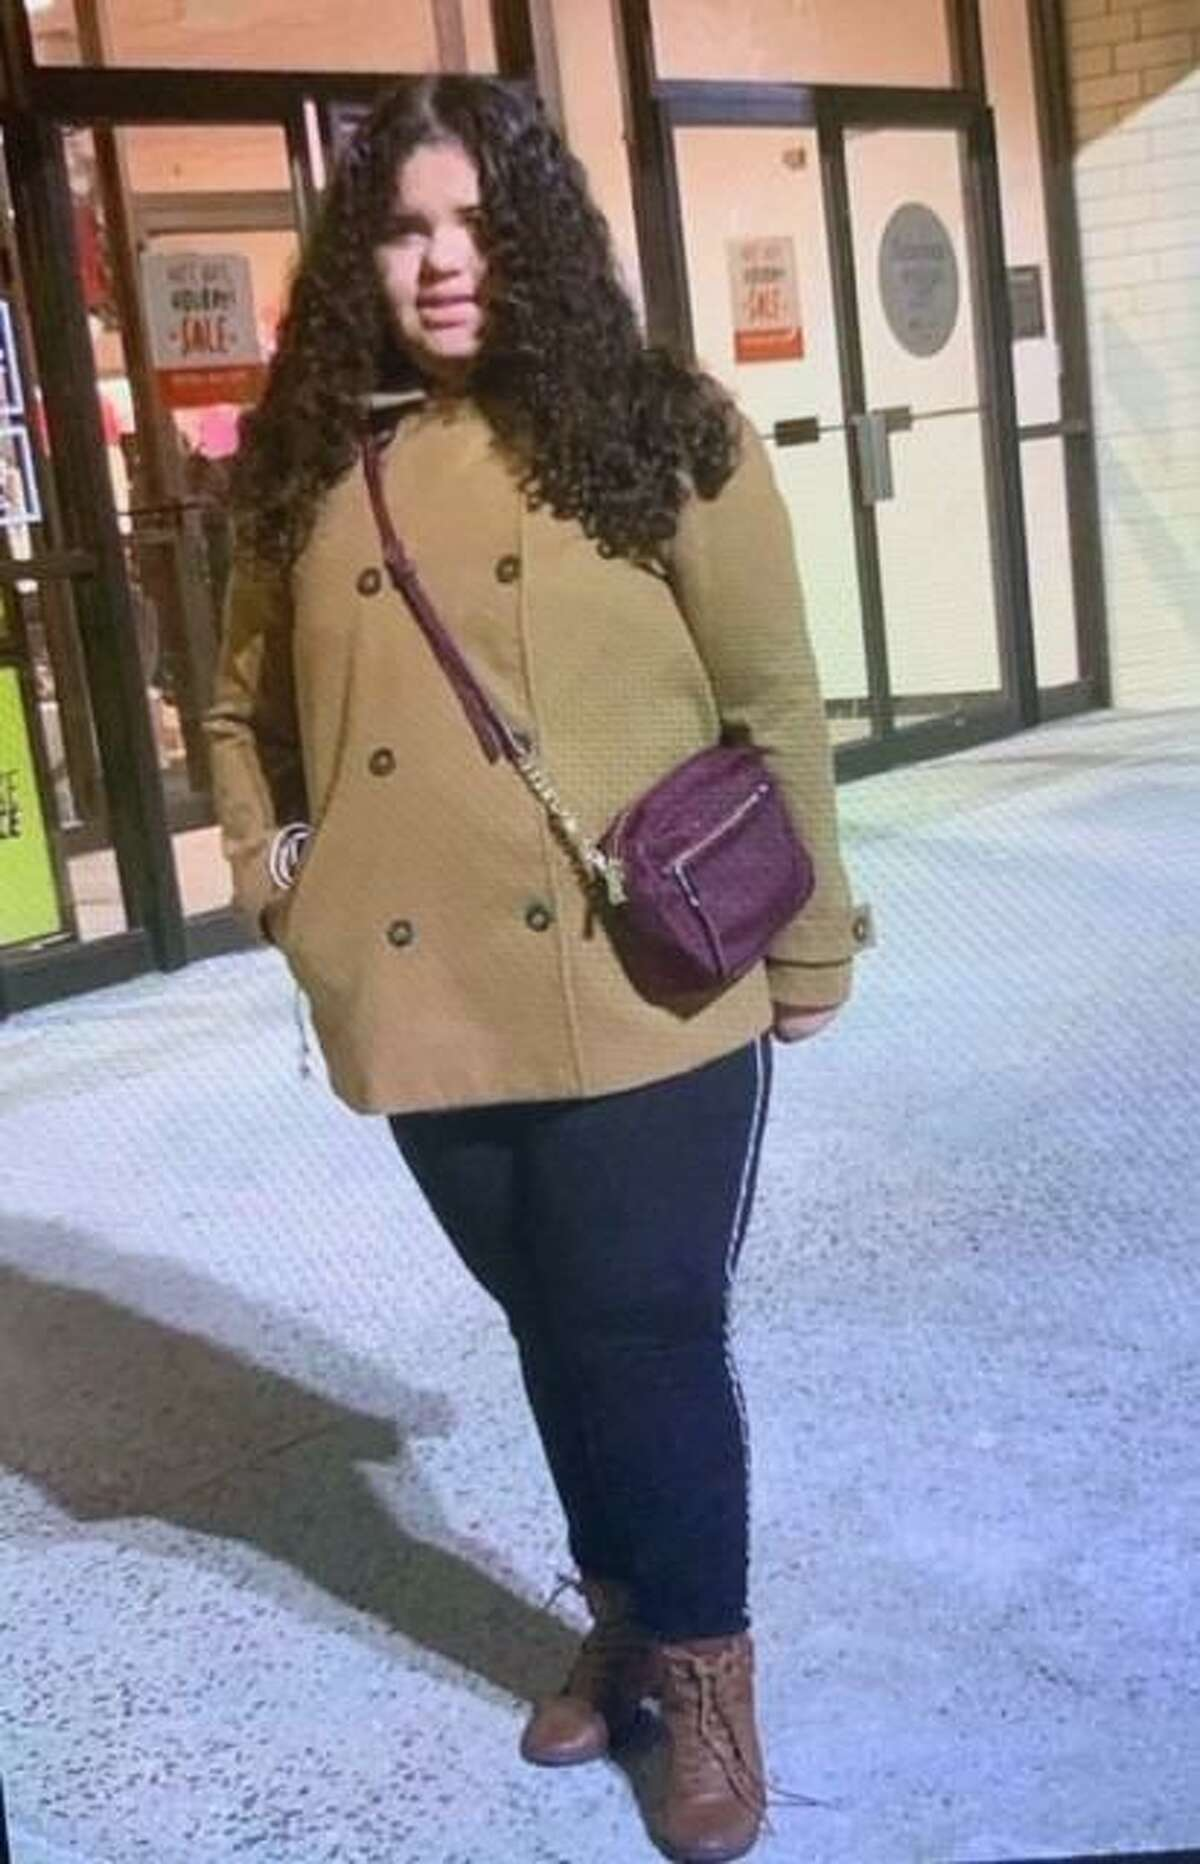 Bridgeport Police Sunday released a more recent photo of 12-year-old Evelyn Santos-Oliveira, missing since Saturday and the subject of a silver alert.